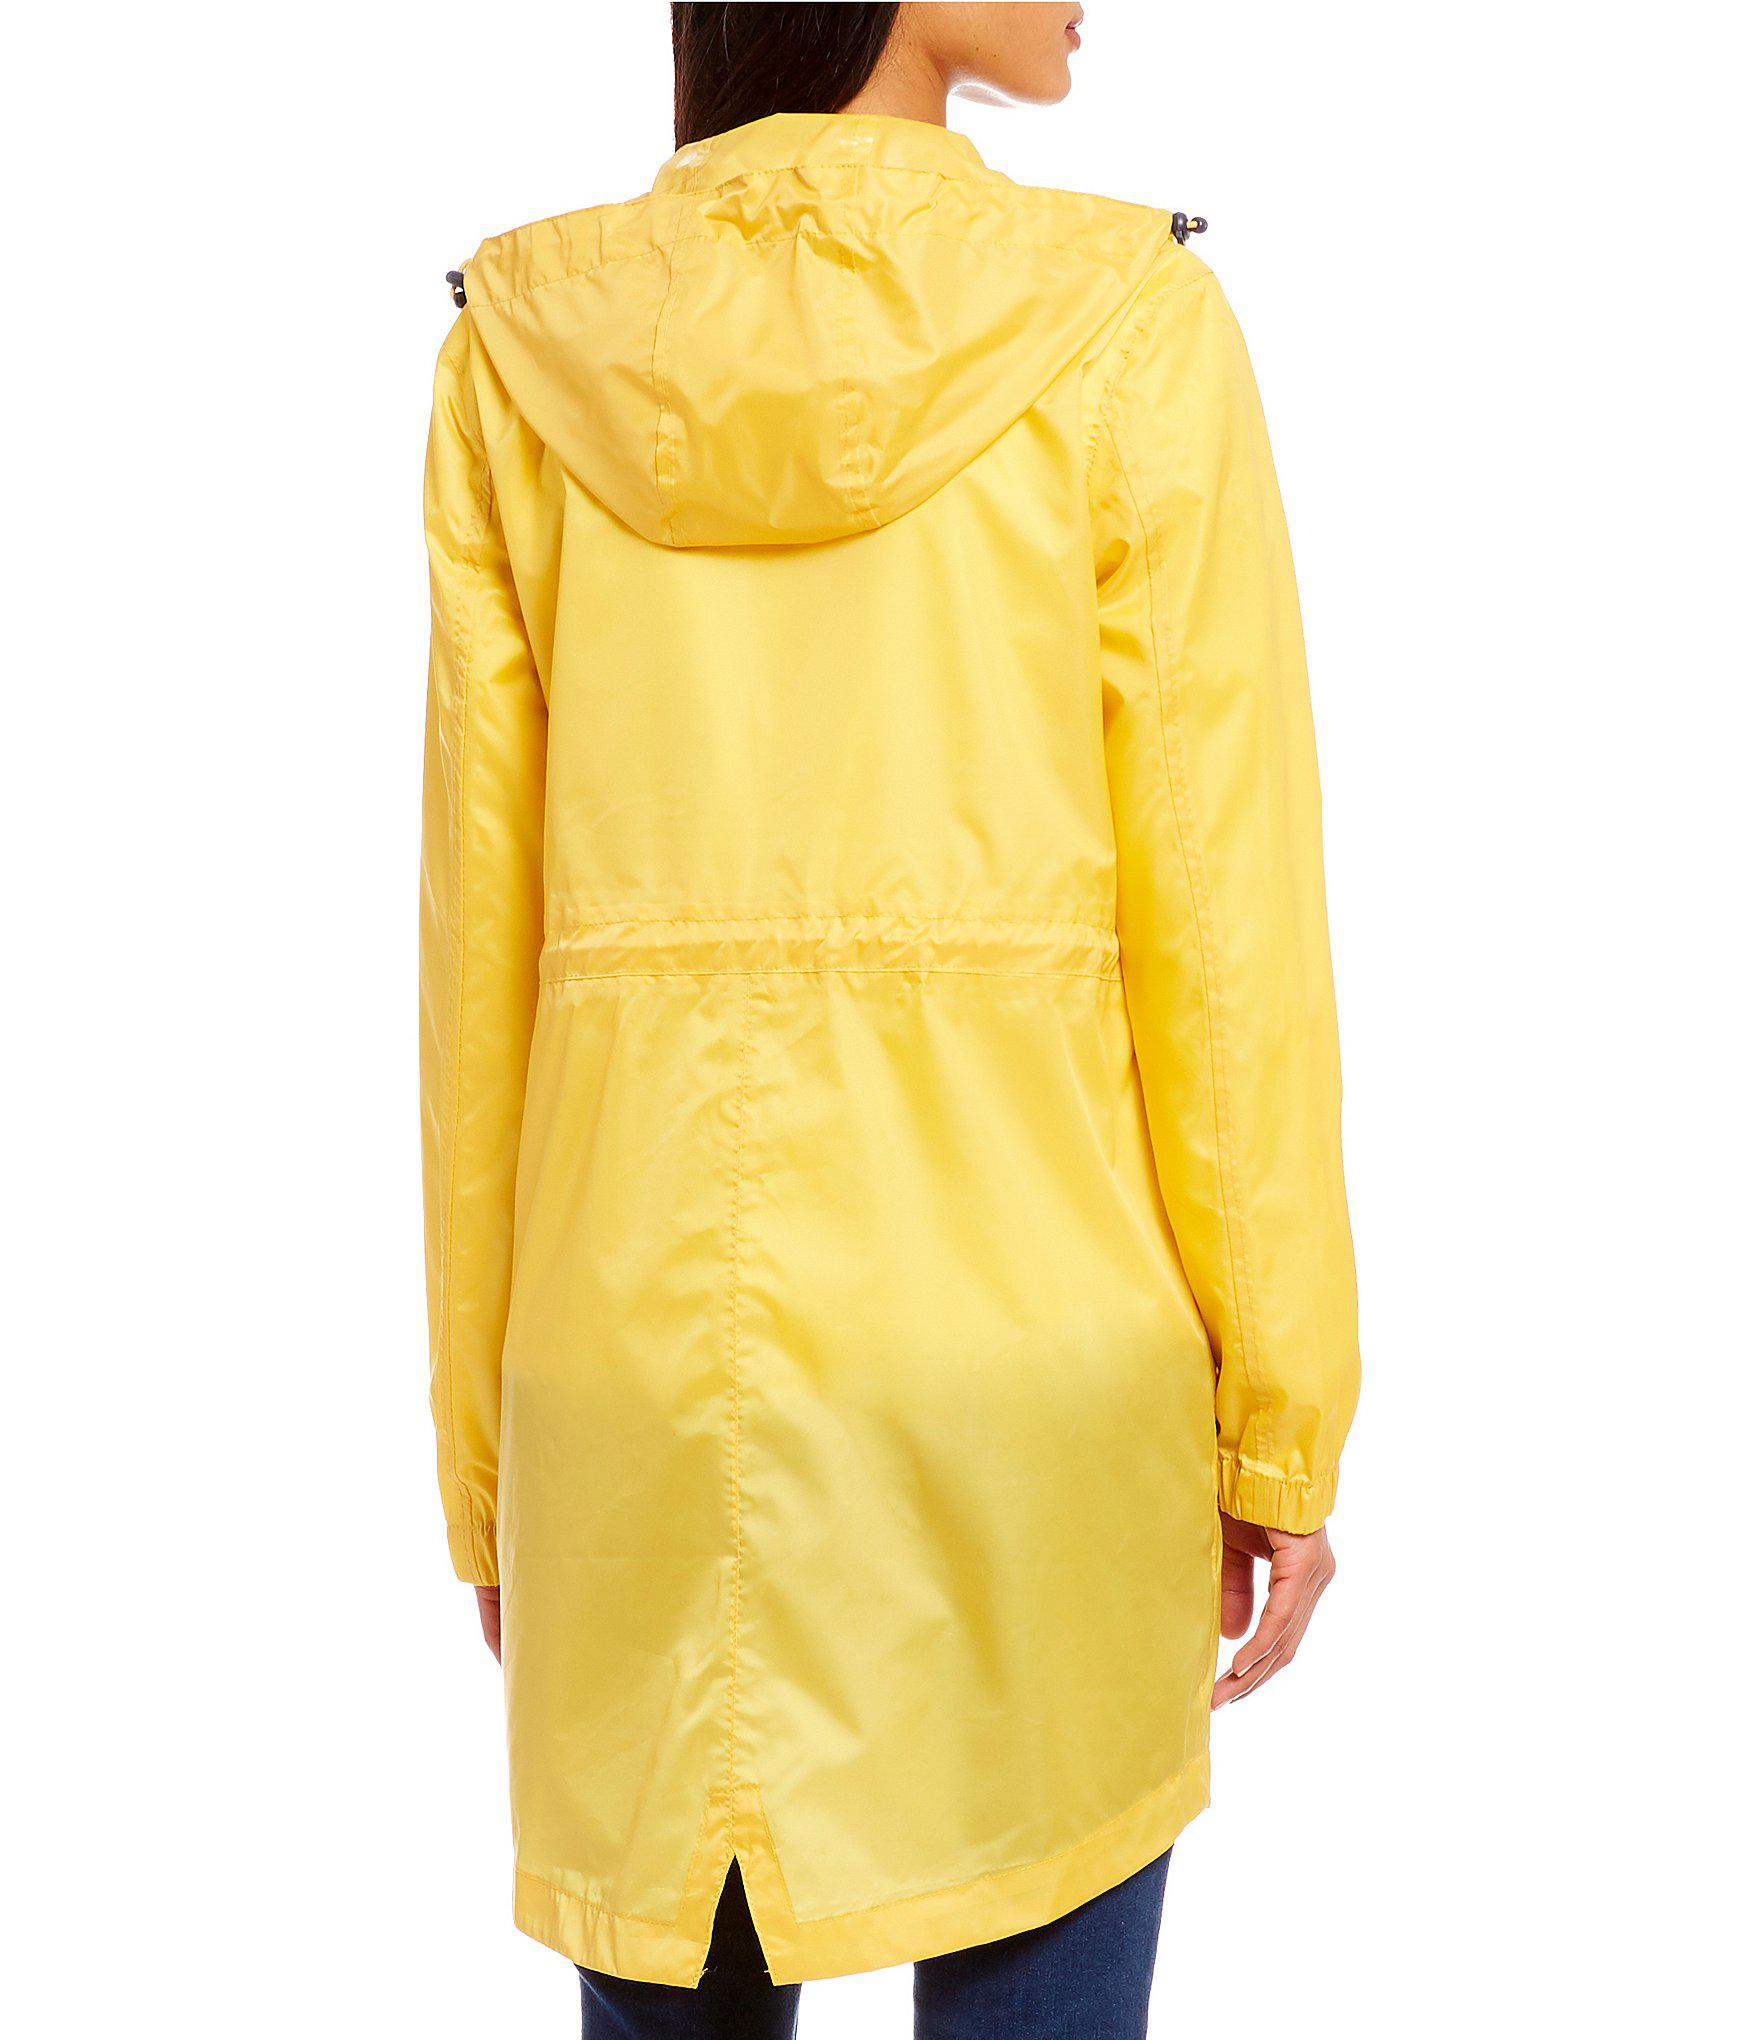 aeb2f17b7 Lyst - Joules Golightly Pack Away Waterproof Hooded Raincoat in Yellow